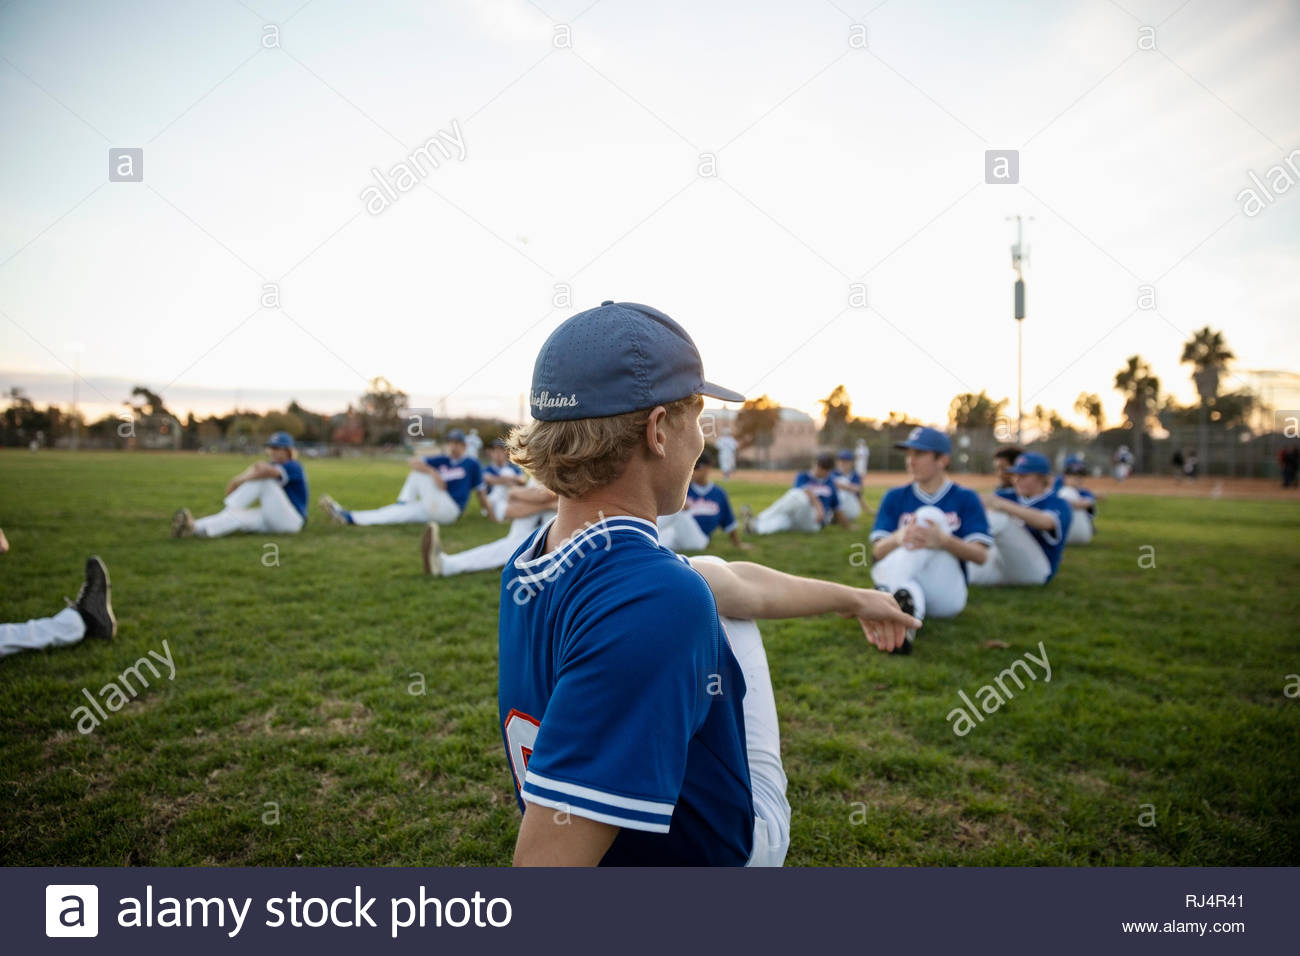 Baseball players stretching in grass - Stock Image